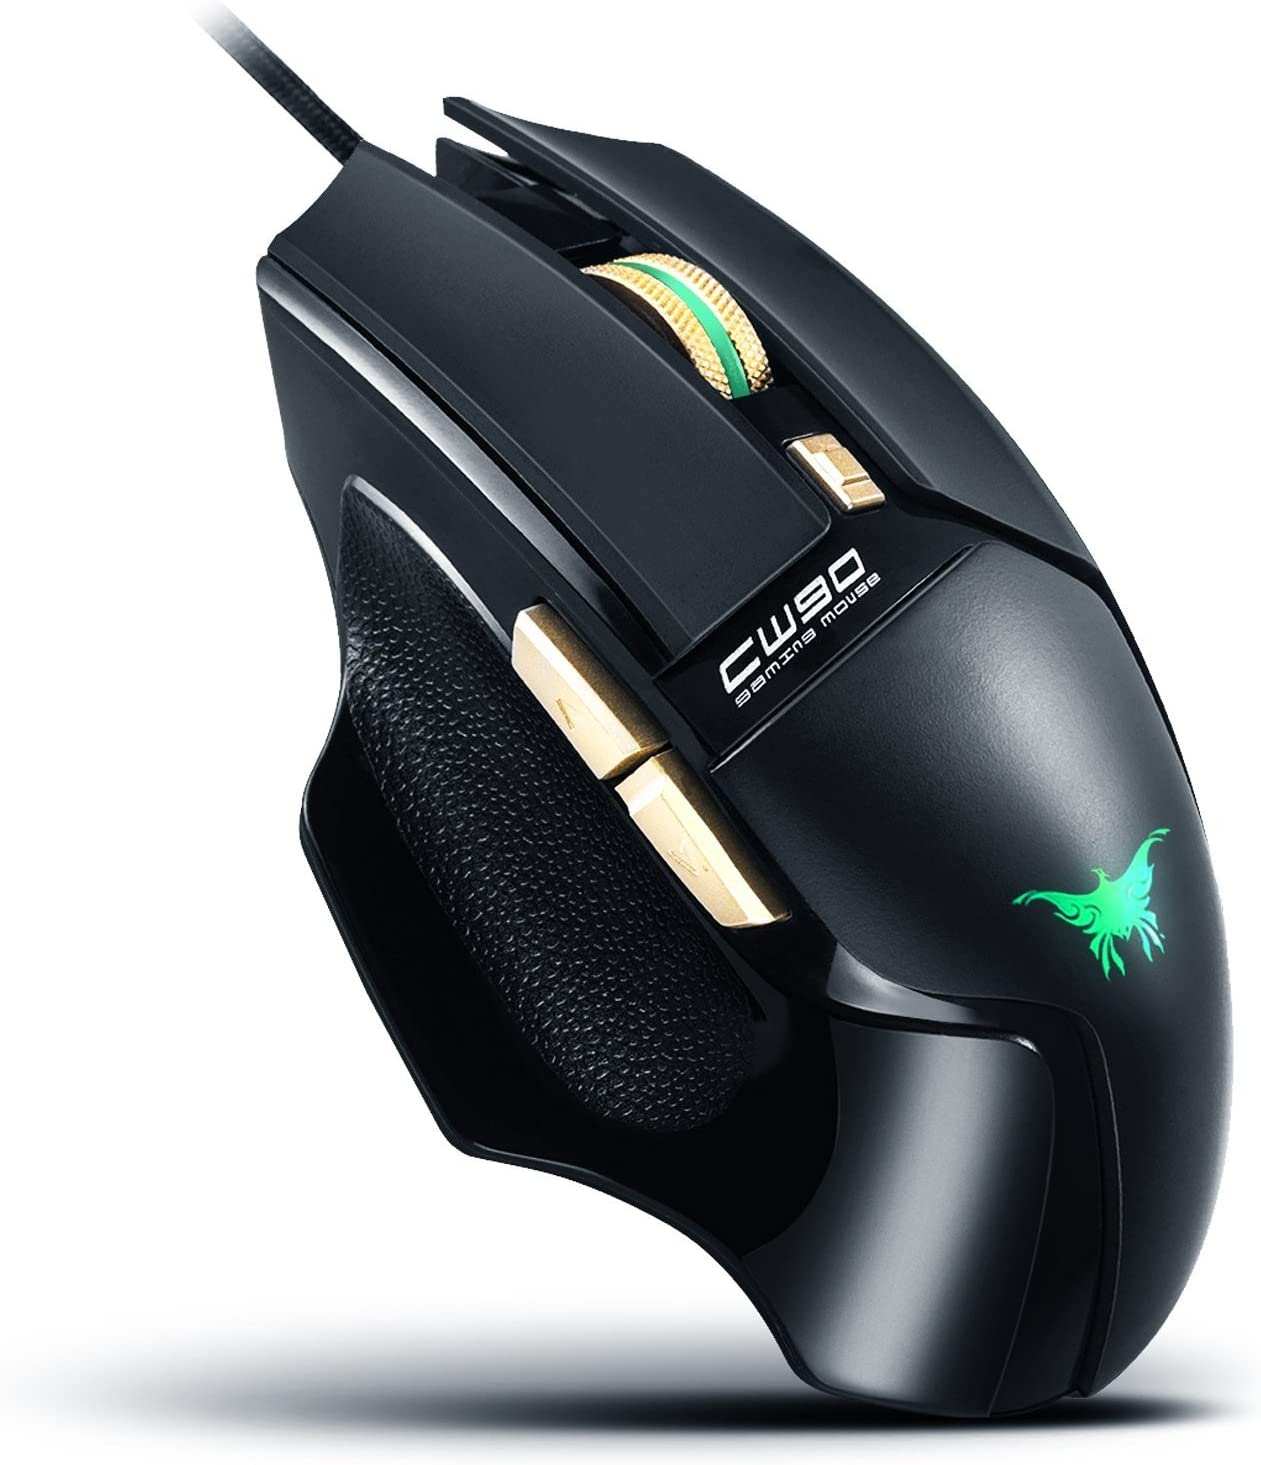 CW90 FPS USB Optical Gaming Mouse Wired PC Computer Laptop Mac Game Mice with Colorful LED, 4 DPI Adjustment Levels – Max 3800 DPI, 6 Buttons with Quick Thumb Switches, Ergonomic Slim Design Black